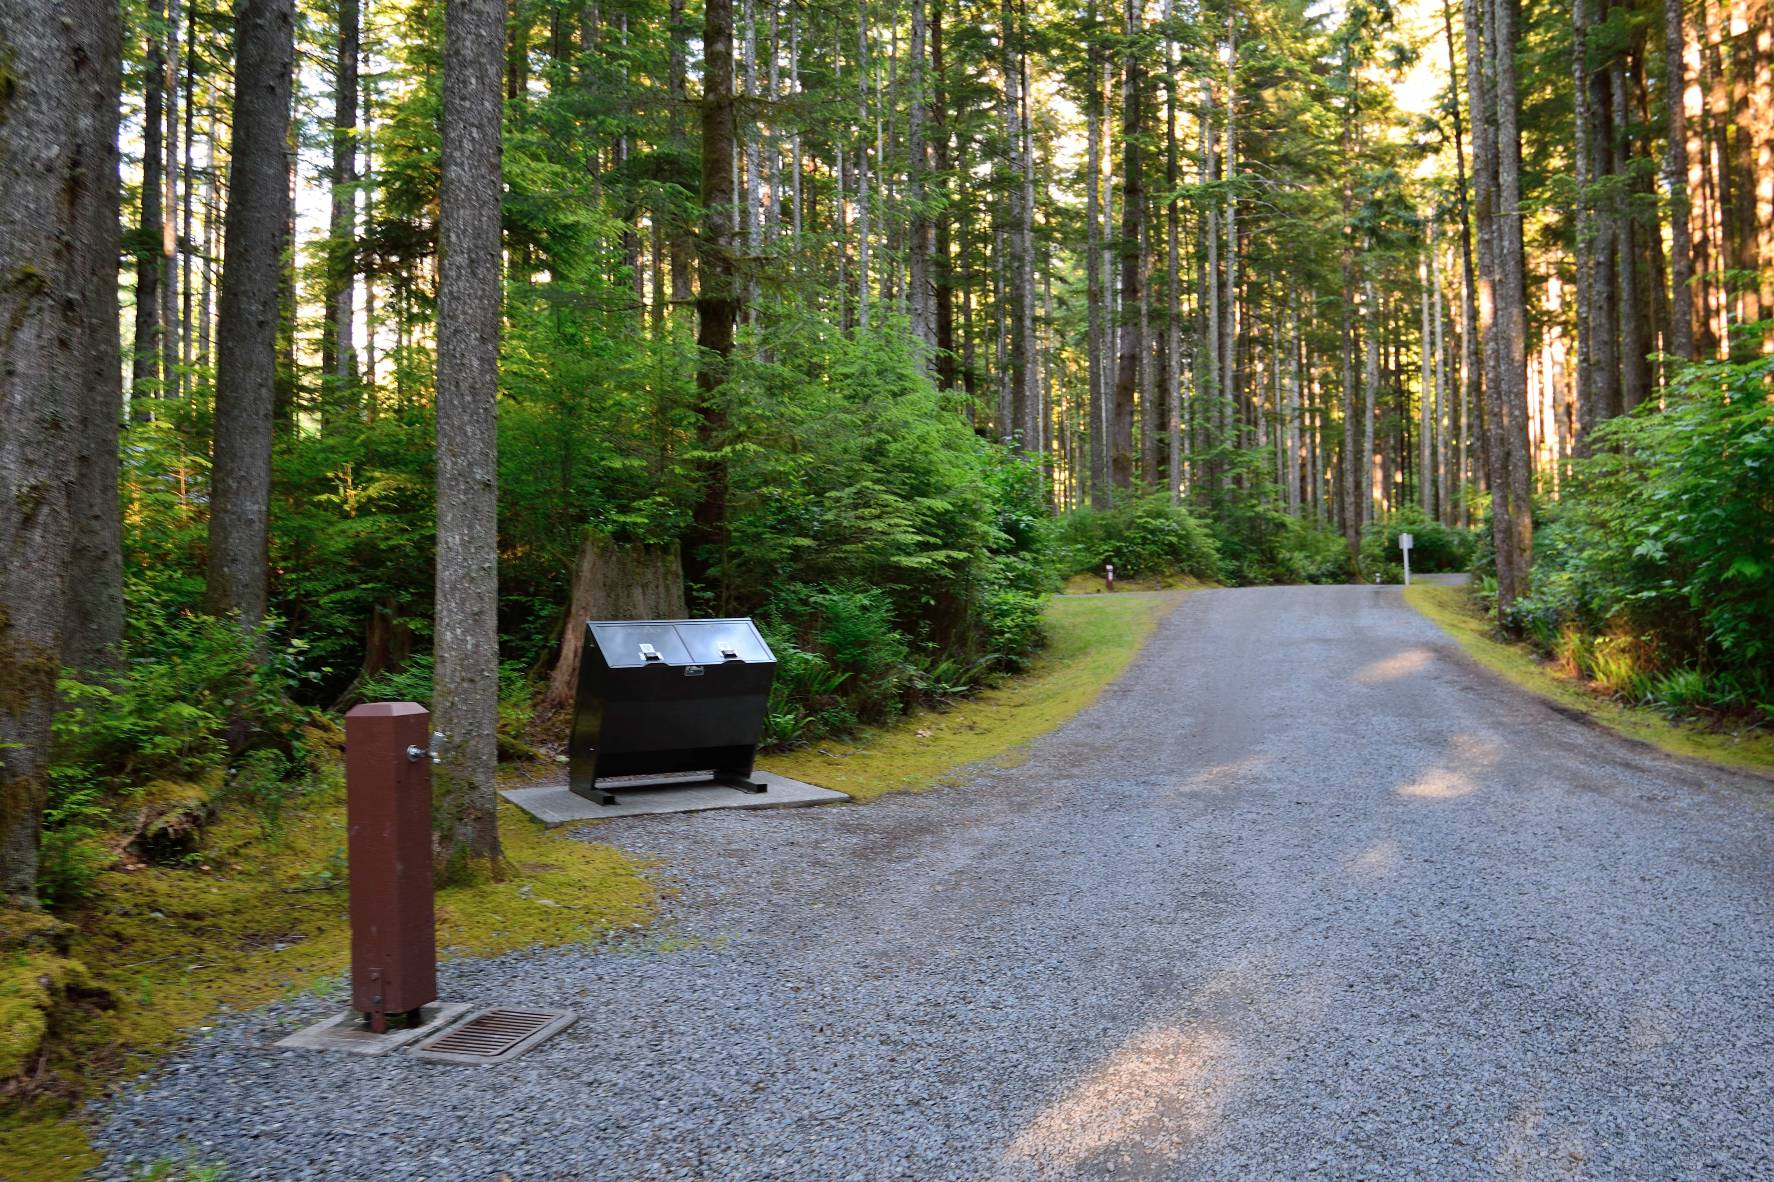 China Beach Campground